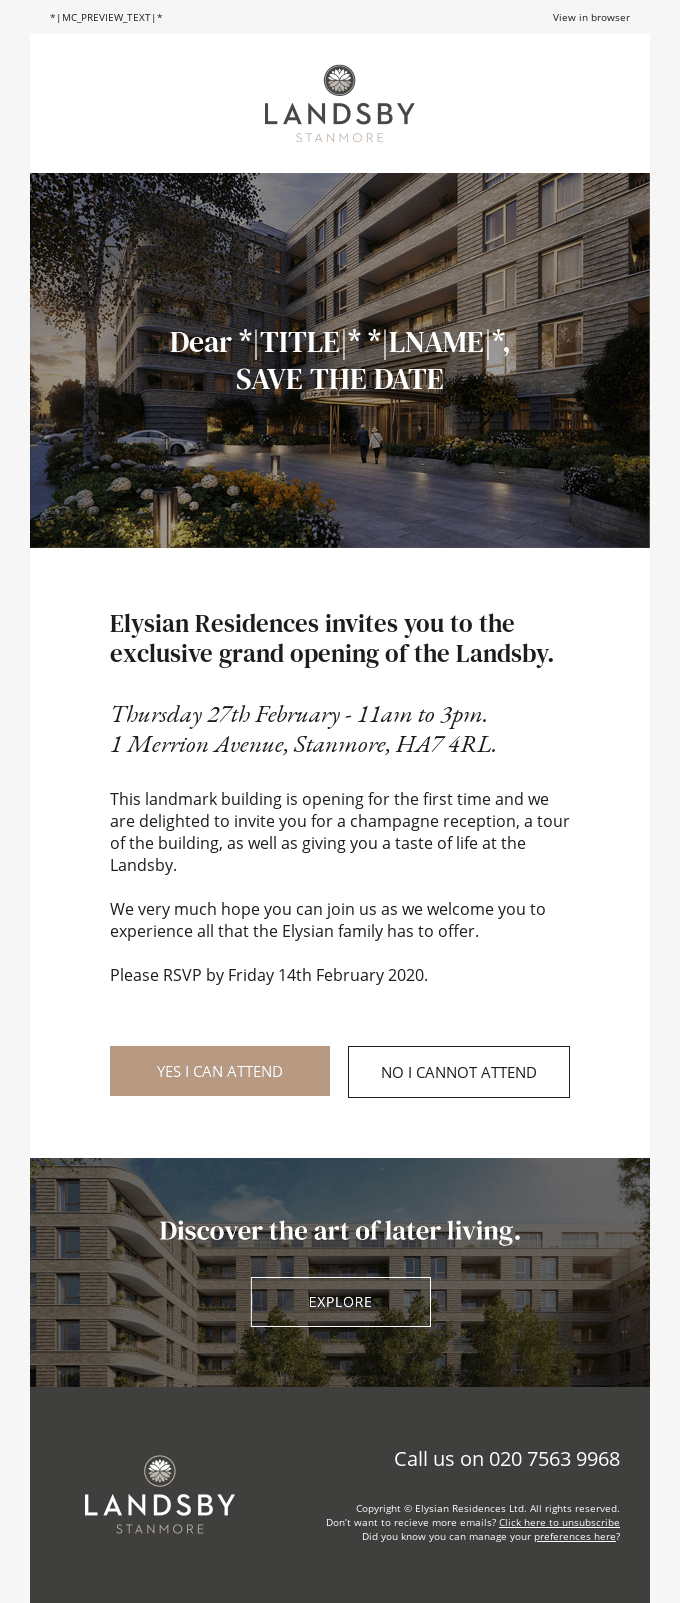 Save the date: Exclusive grand opening of the Landsby